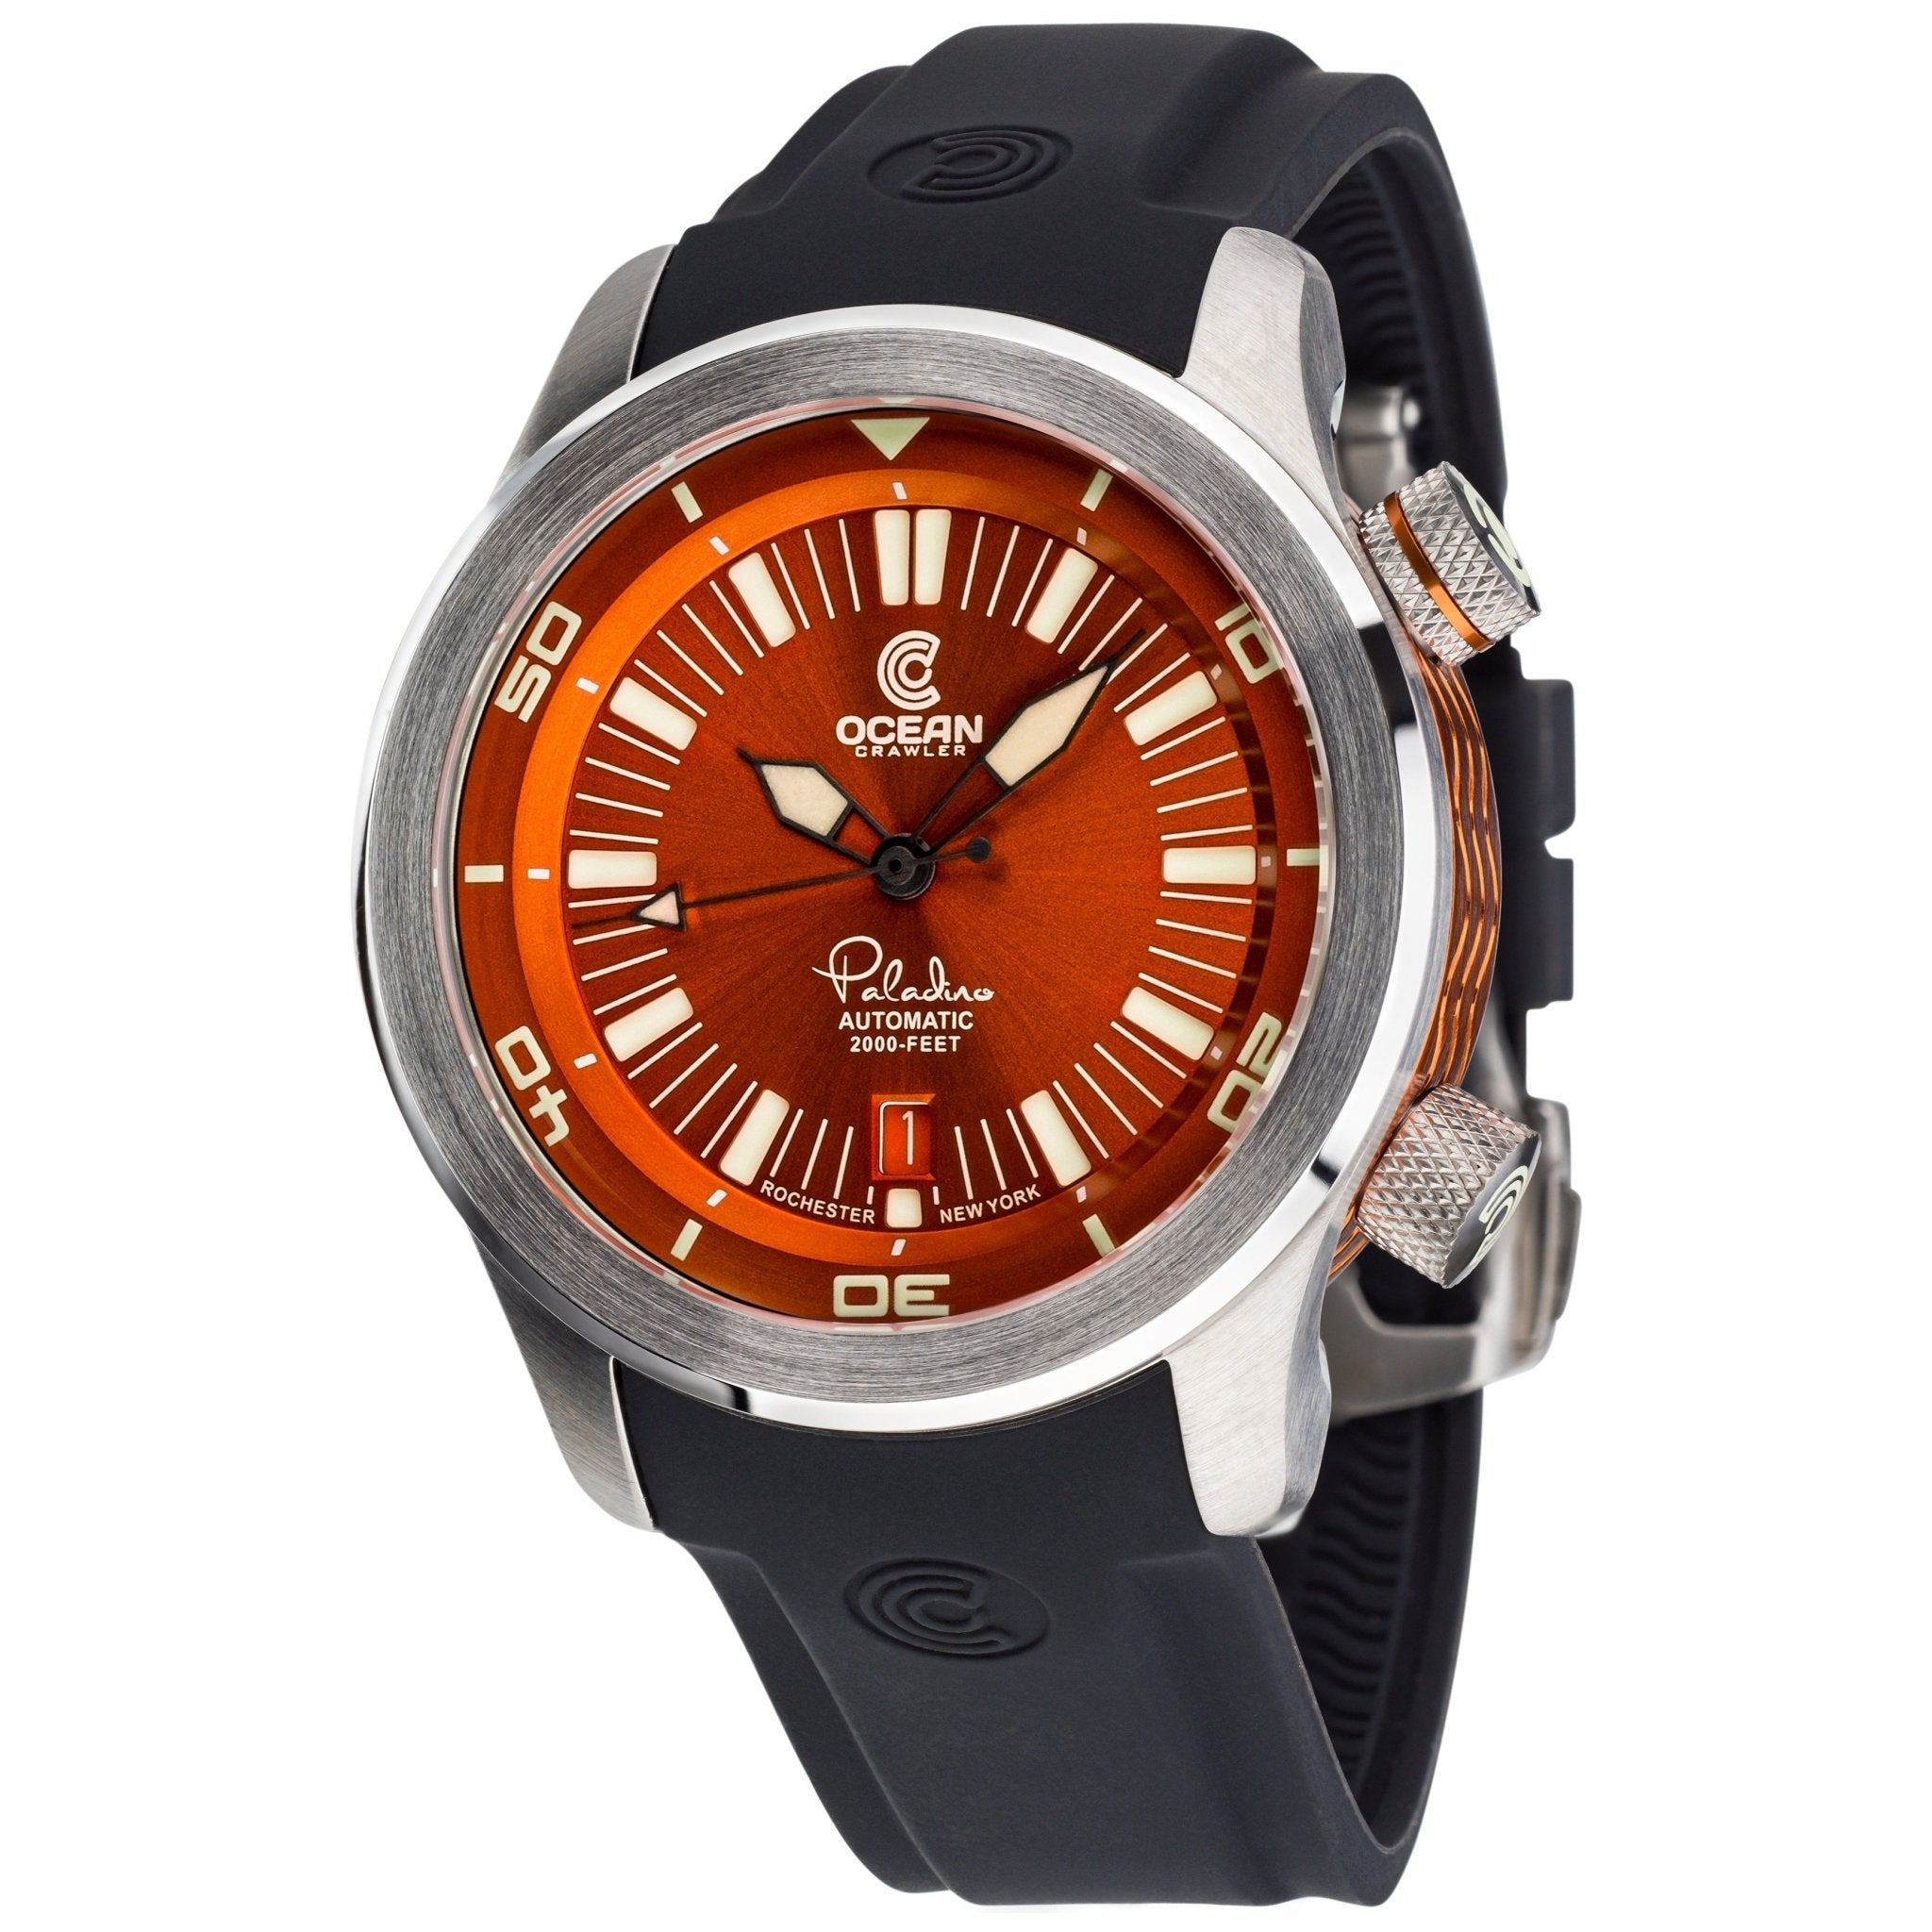 Ocean Crawler Paladino WaveMaker Orange/Black - Ocean Crawler Watch Co.